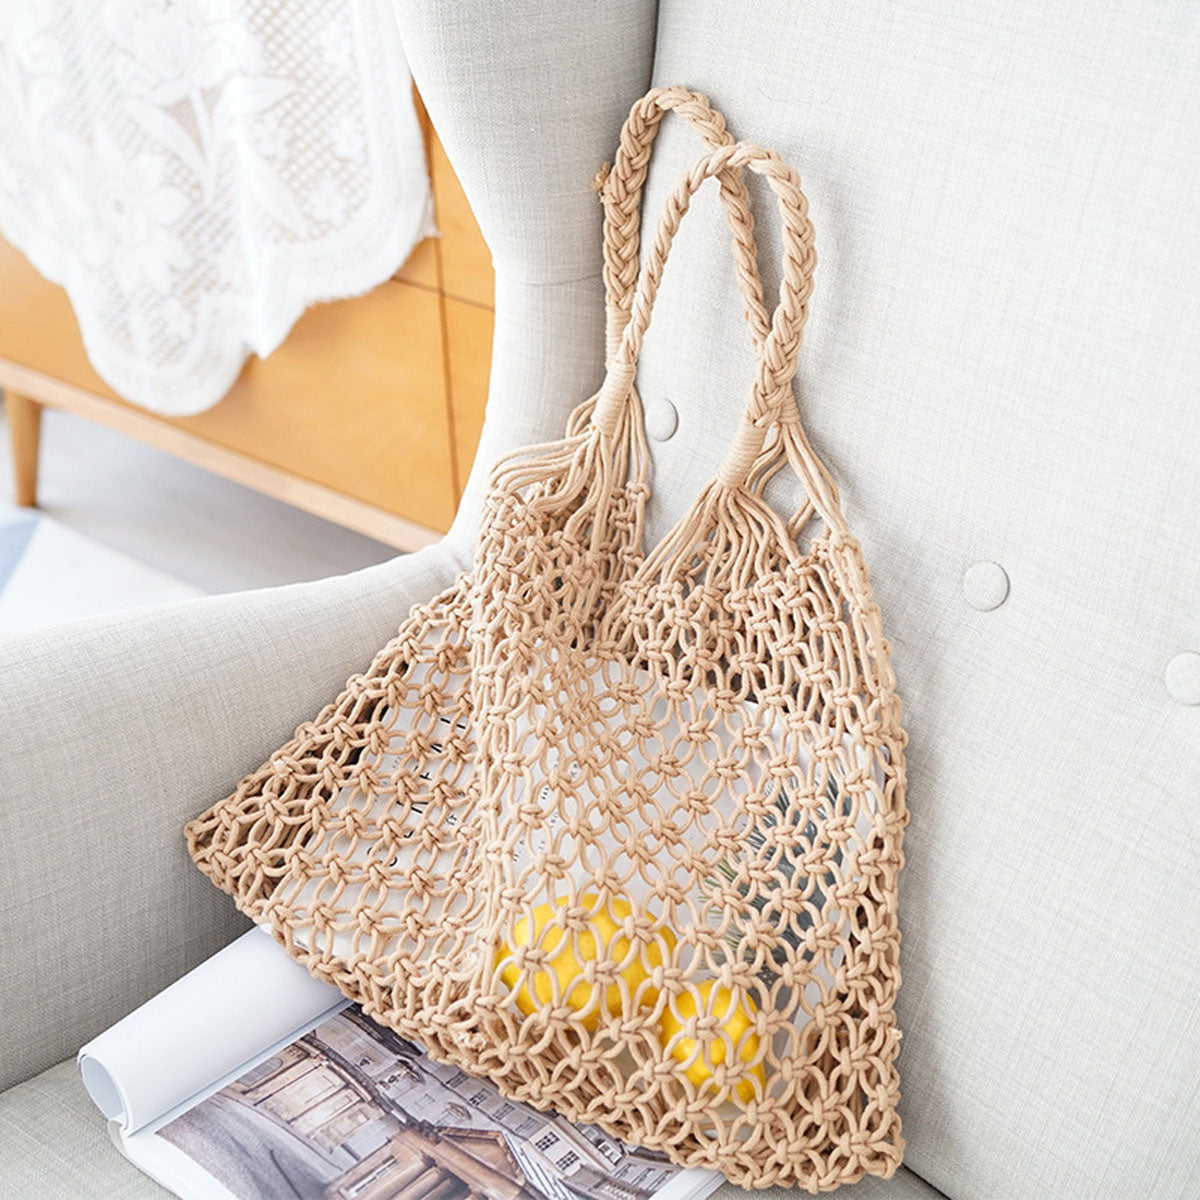 Vintage Bag Large Straw Bag Handmade Crochet Braid Fringed Bag Knitted Handbag Beach Bohemian Shoulder Bag - SolBikini